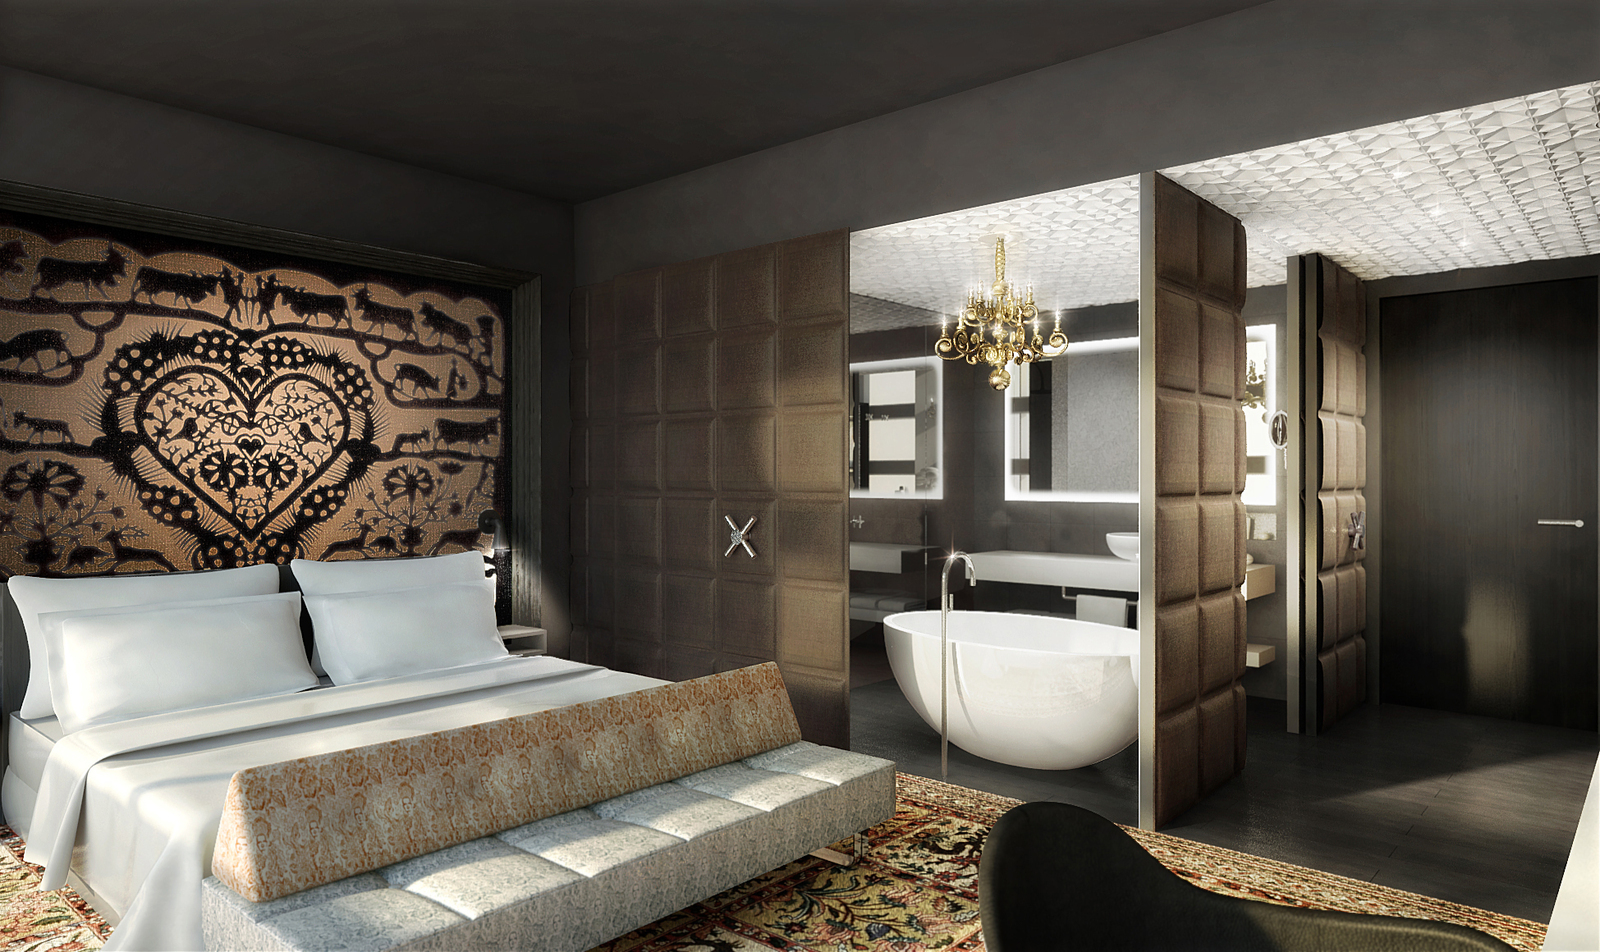 Suite dreams at Kameha Grand Zurich